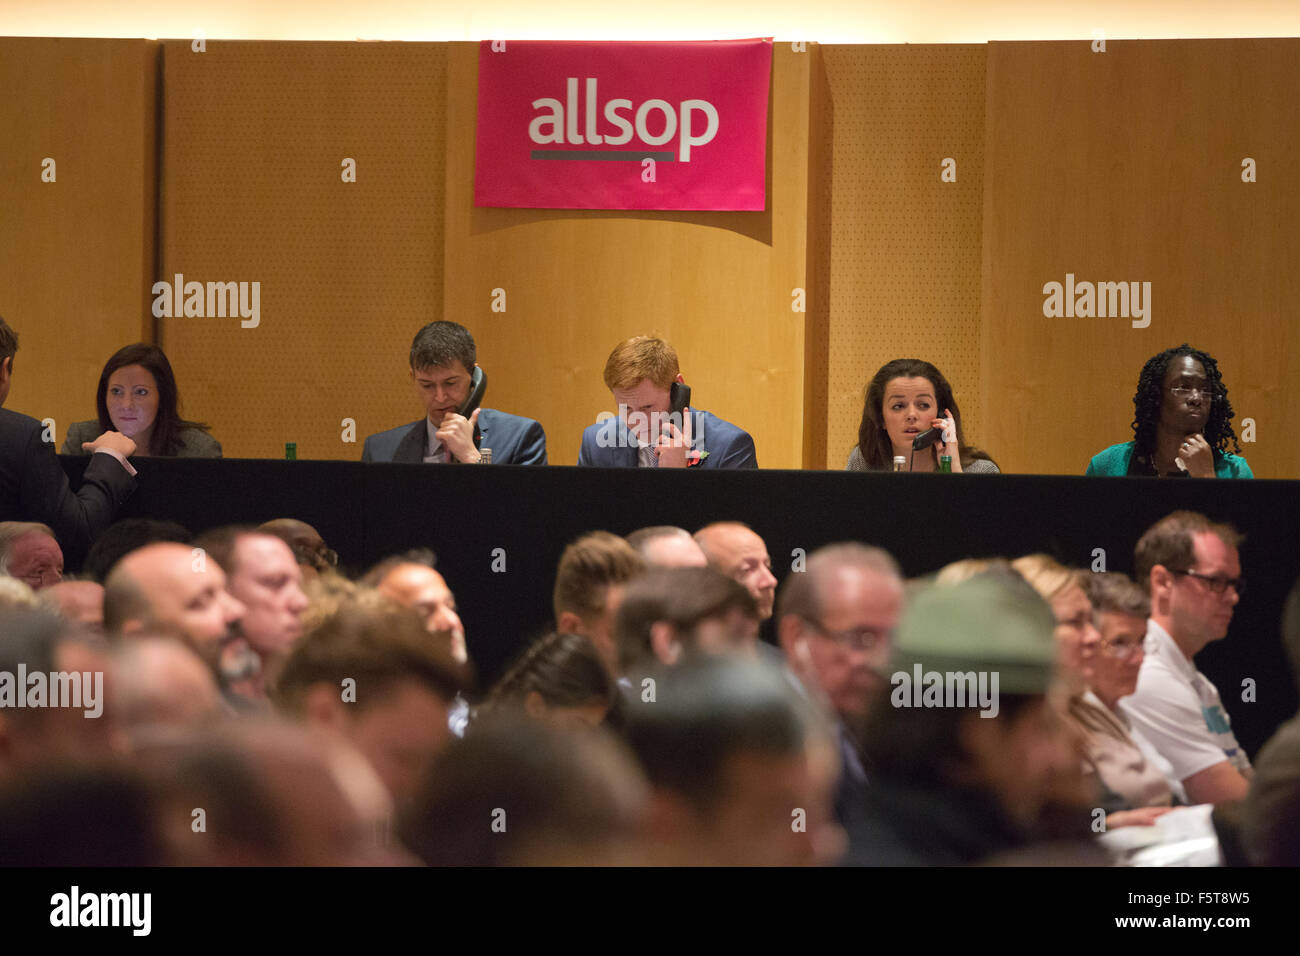 Allsop Residential auctions, Allsop Auctions, where people attend and bid on residential properties across the United - Stock Image